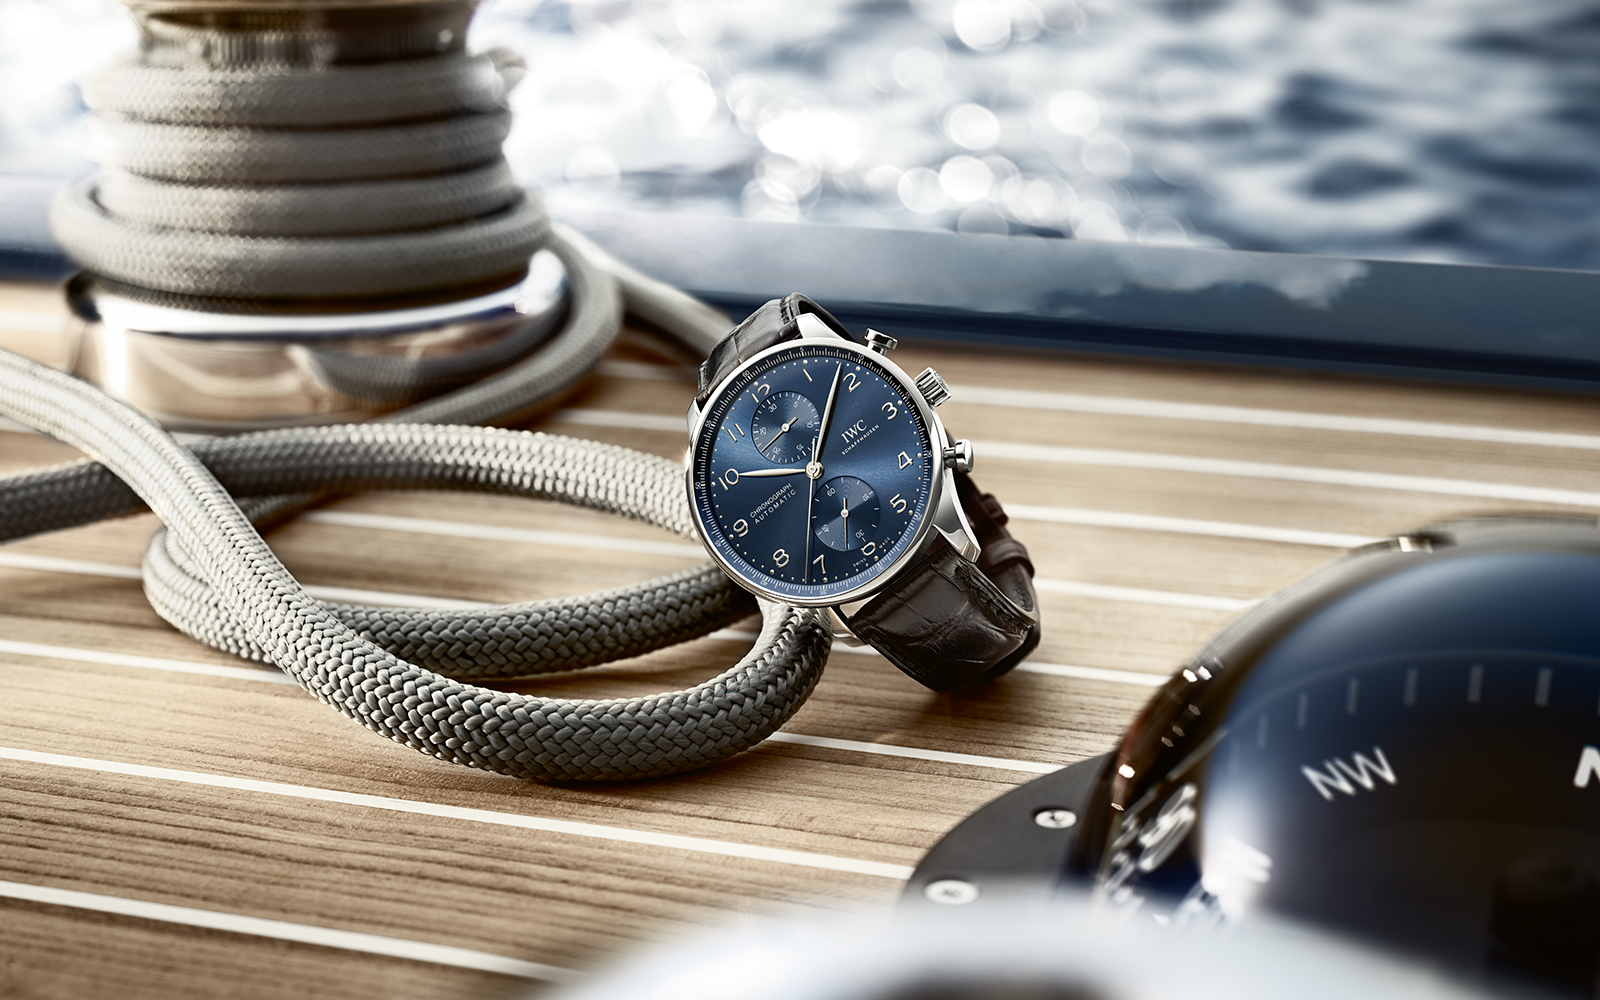 PORTUGIESER CHRONOGRAPH IW371606 - feature